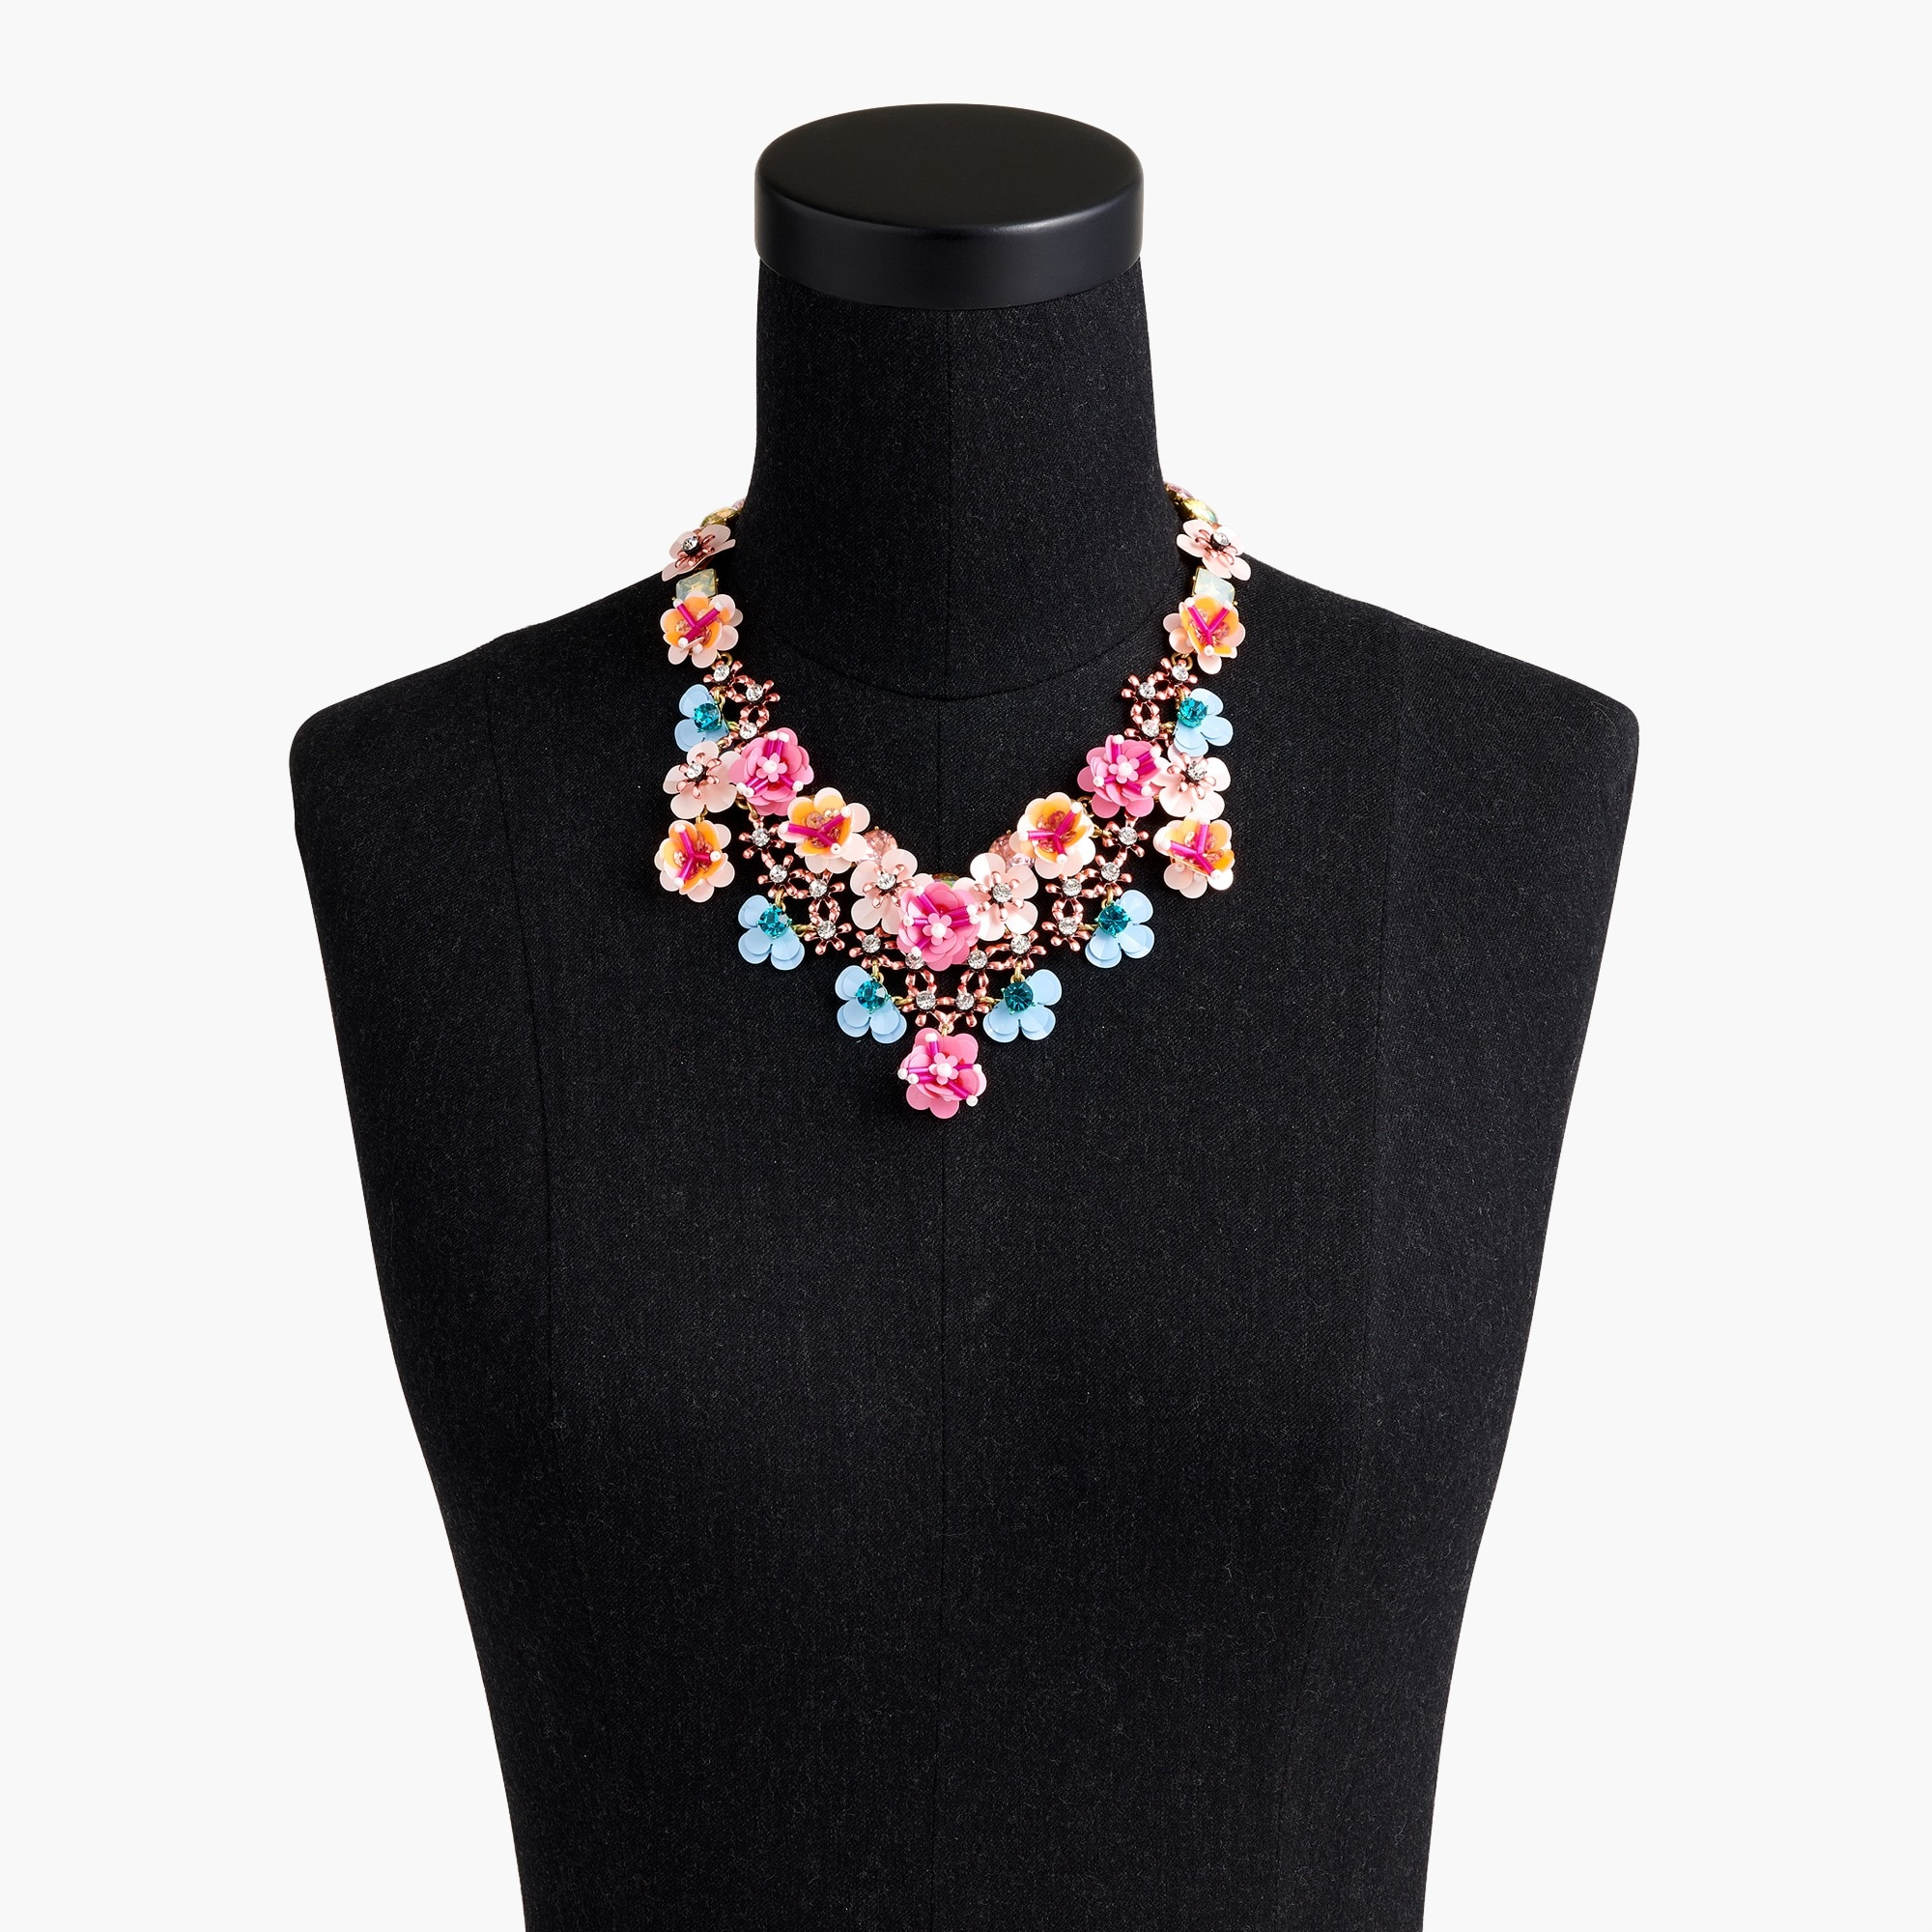 Image 2 for Flower garden statement necklace